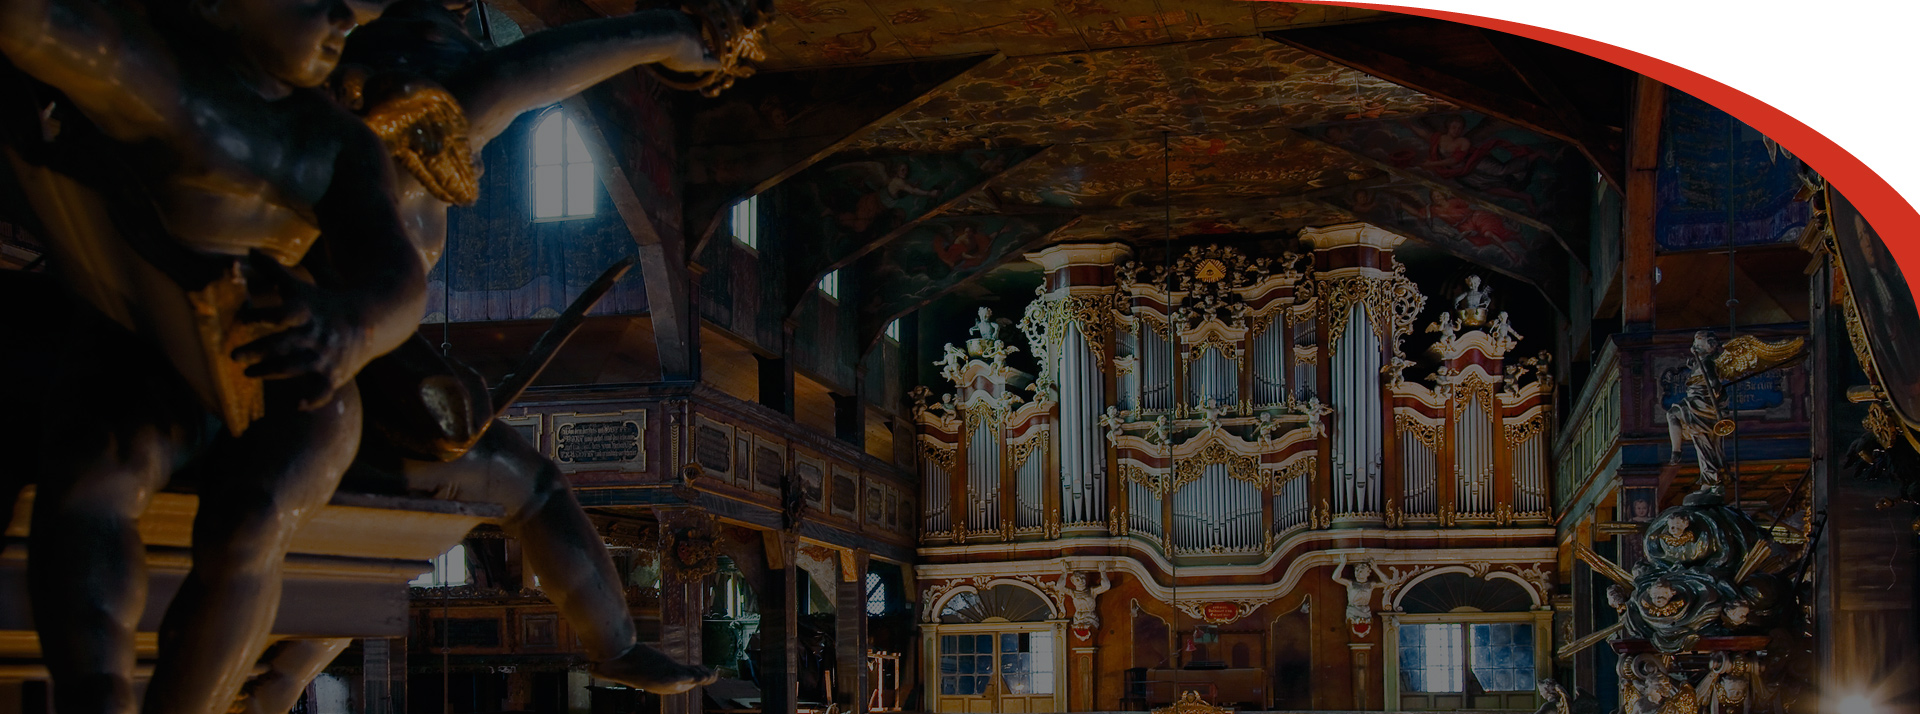 Welcome to the Church of Peace in Swidnica